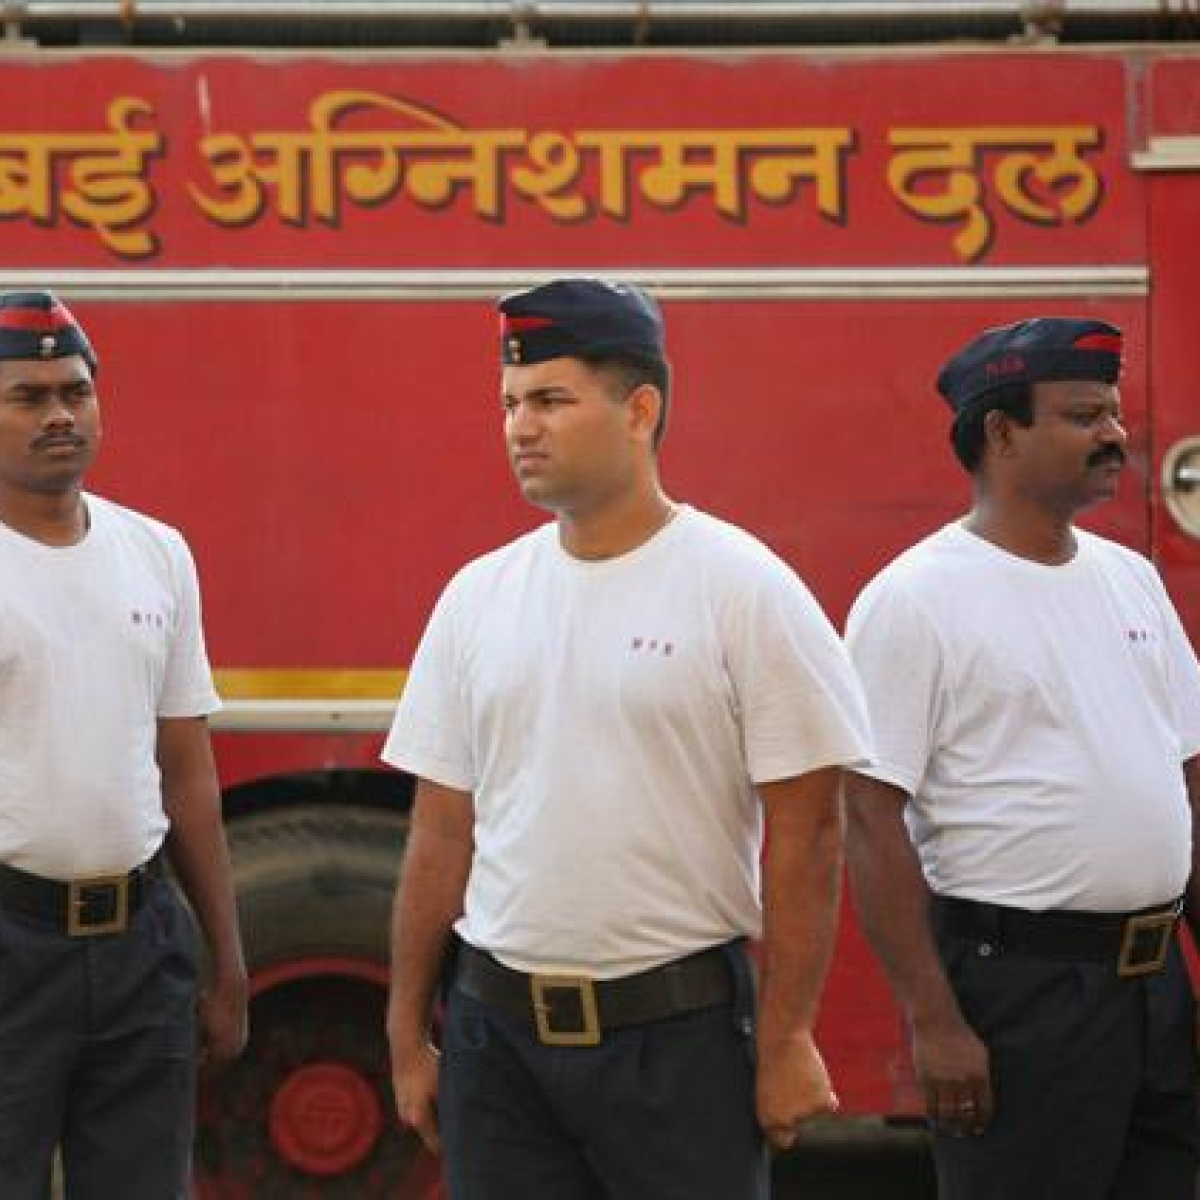 Mumbai Safety: Fire brigade personnel to inspect hospitals, school, buildings